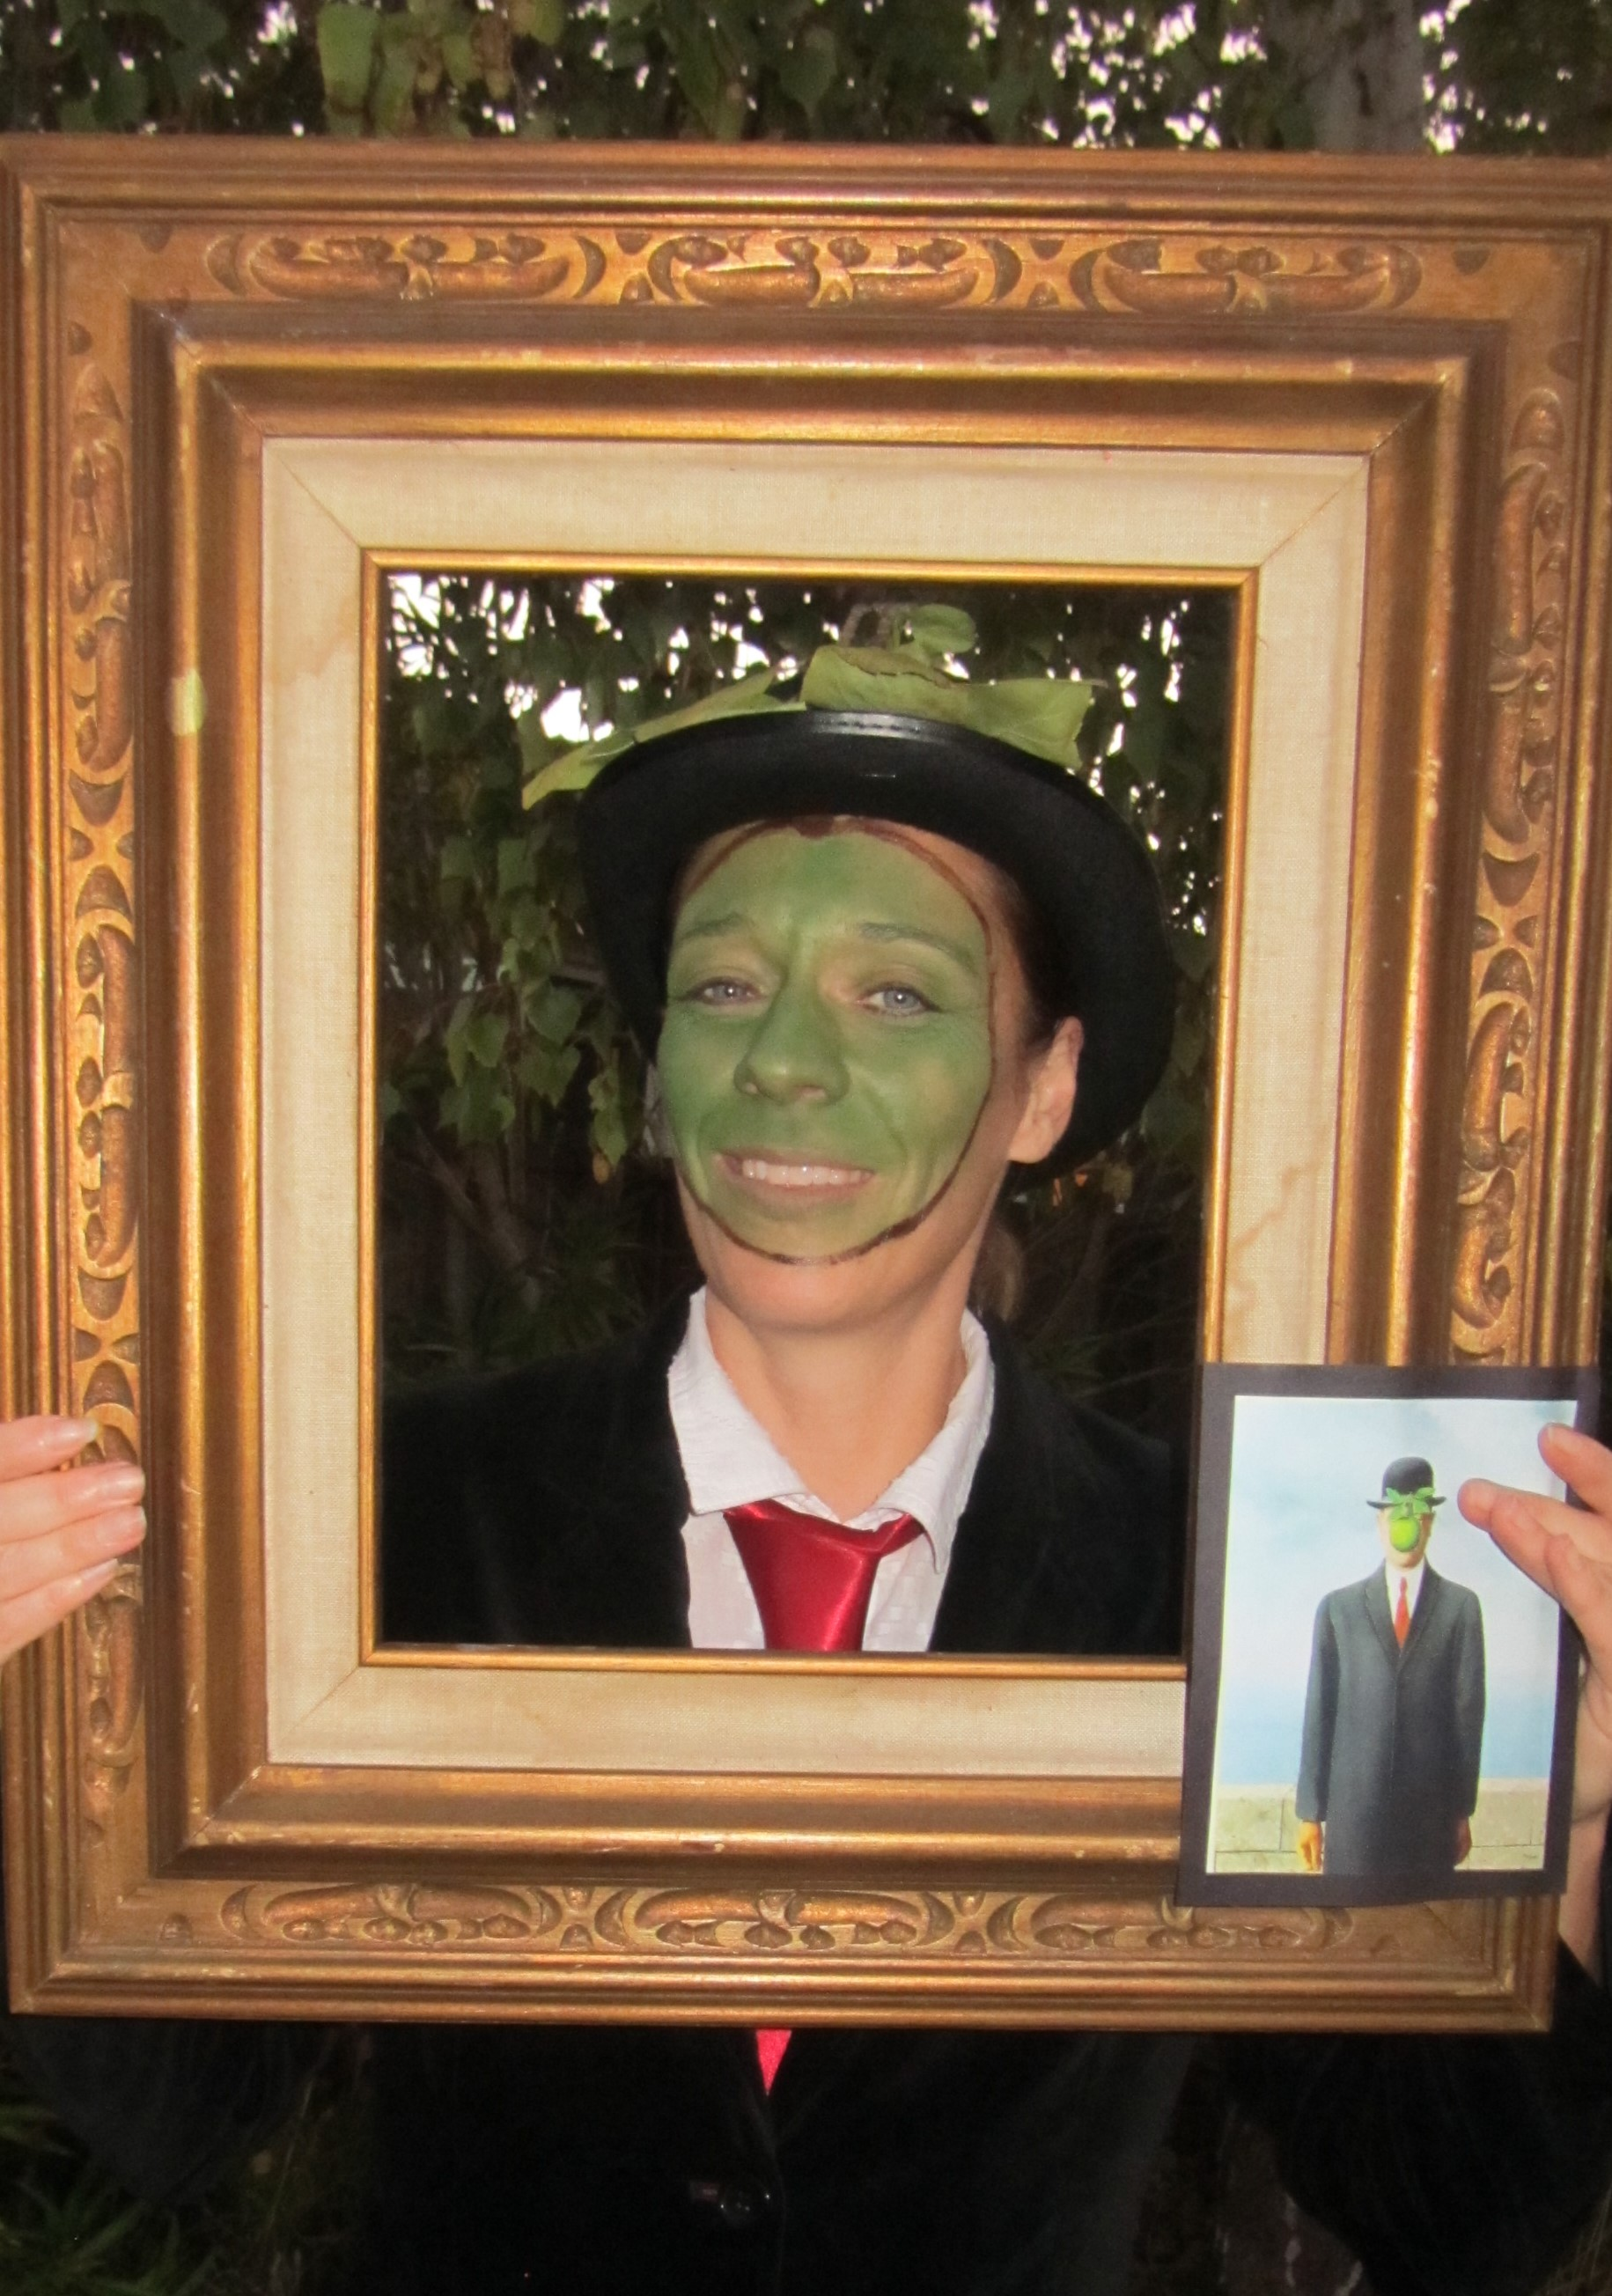 Halloween picture of Ms. Fordham as Magritte painting, Man in a Bowler Hat